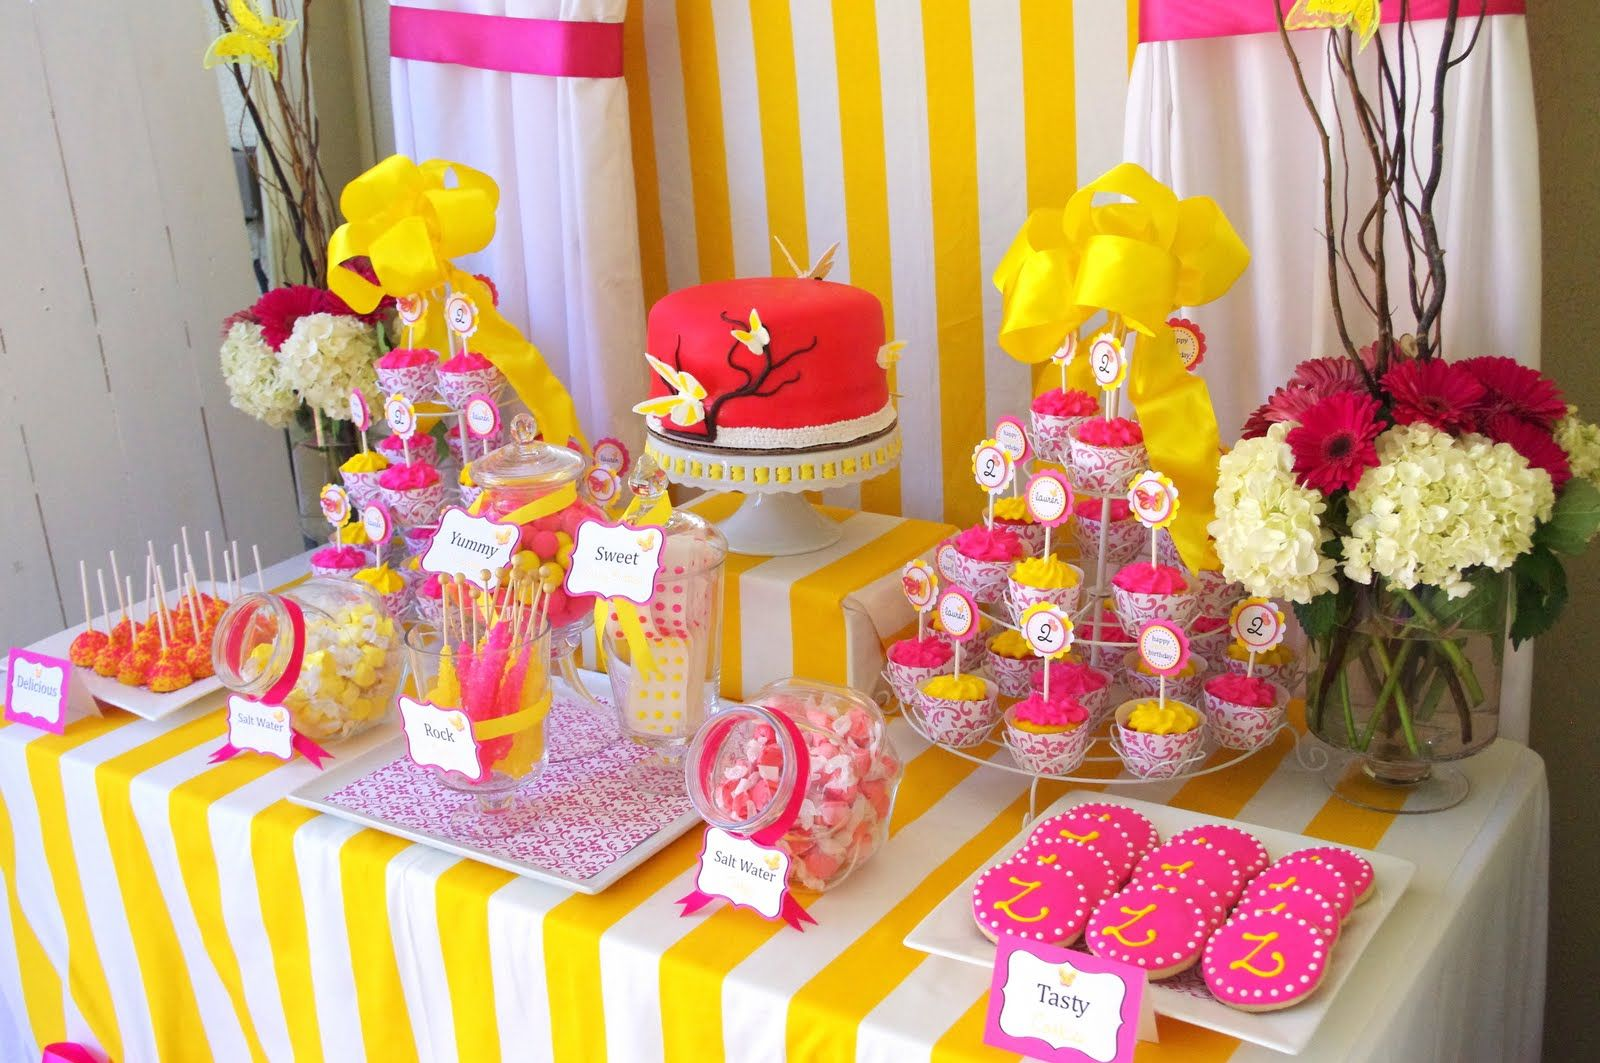 Advertise Dessert And Candy Tables Cake Table Decorations Birthday Birthday Party Tables Butterfly Birthday Party